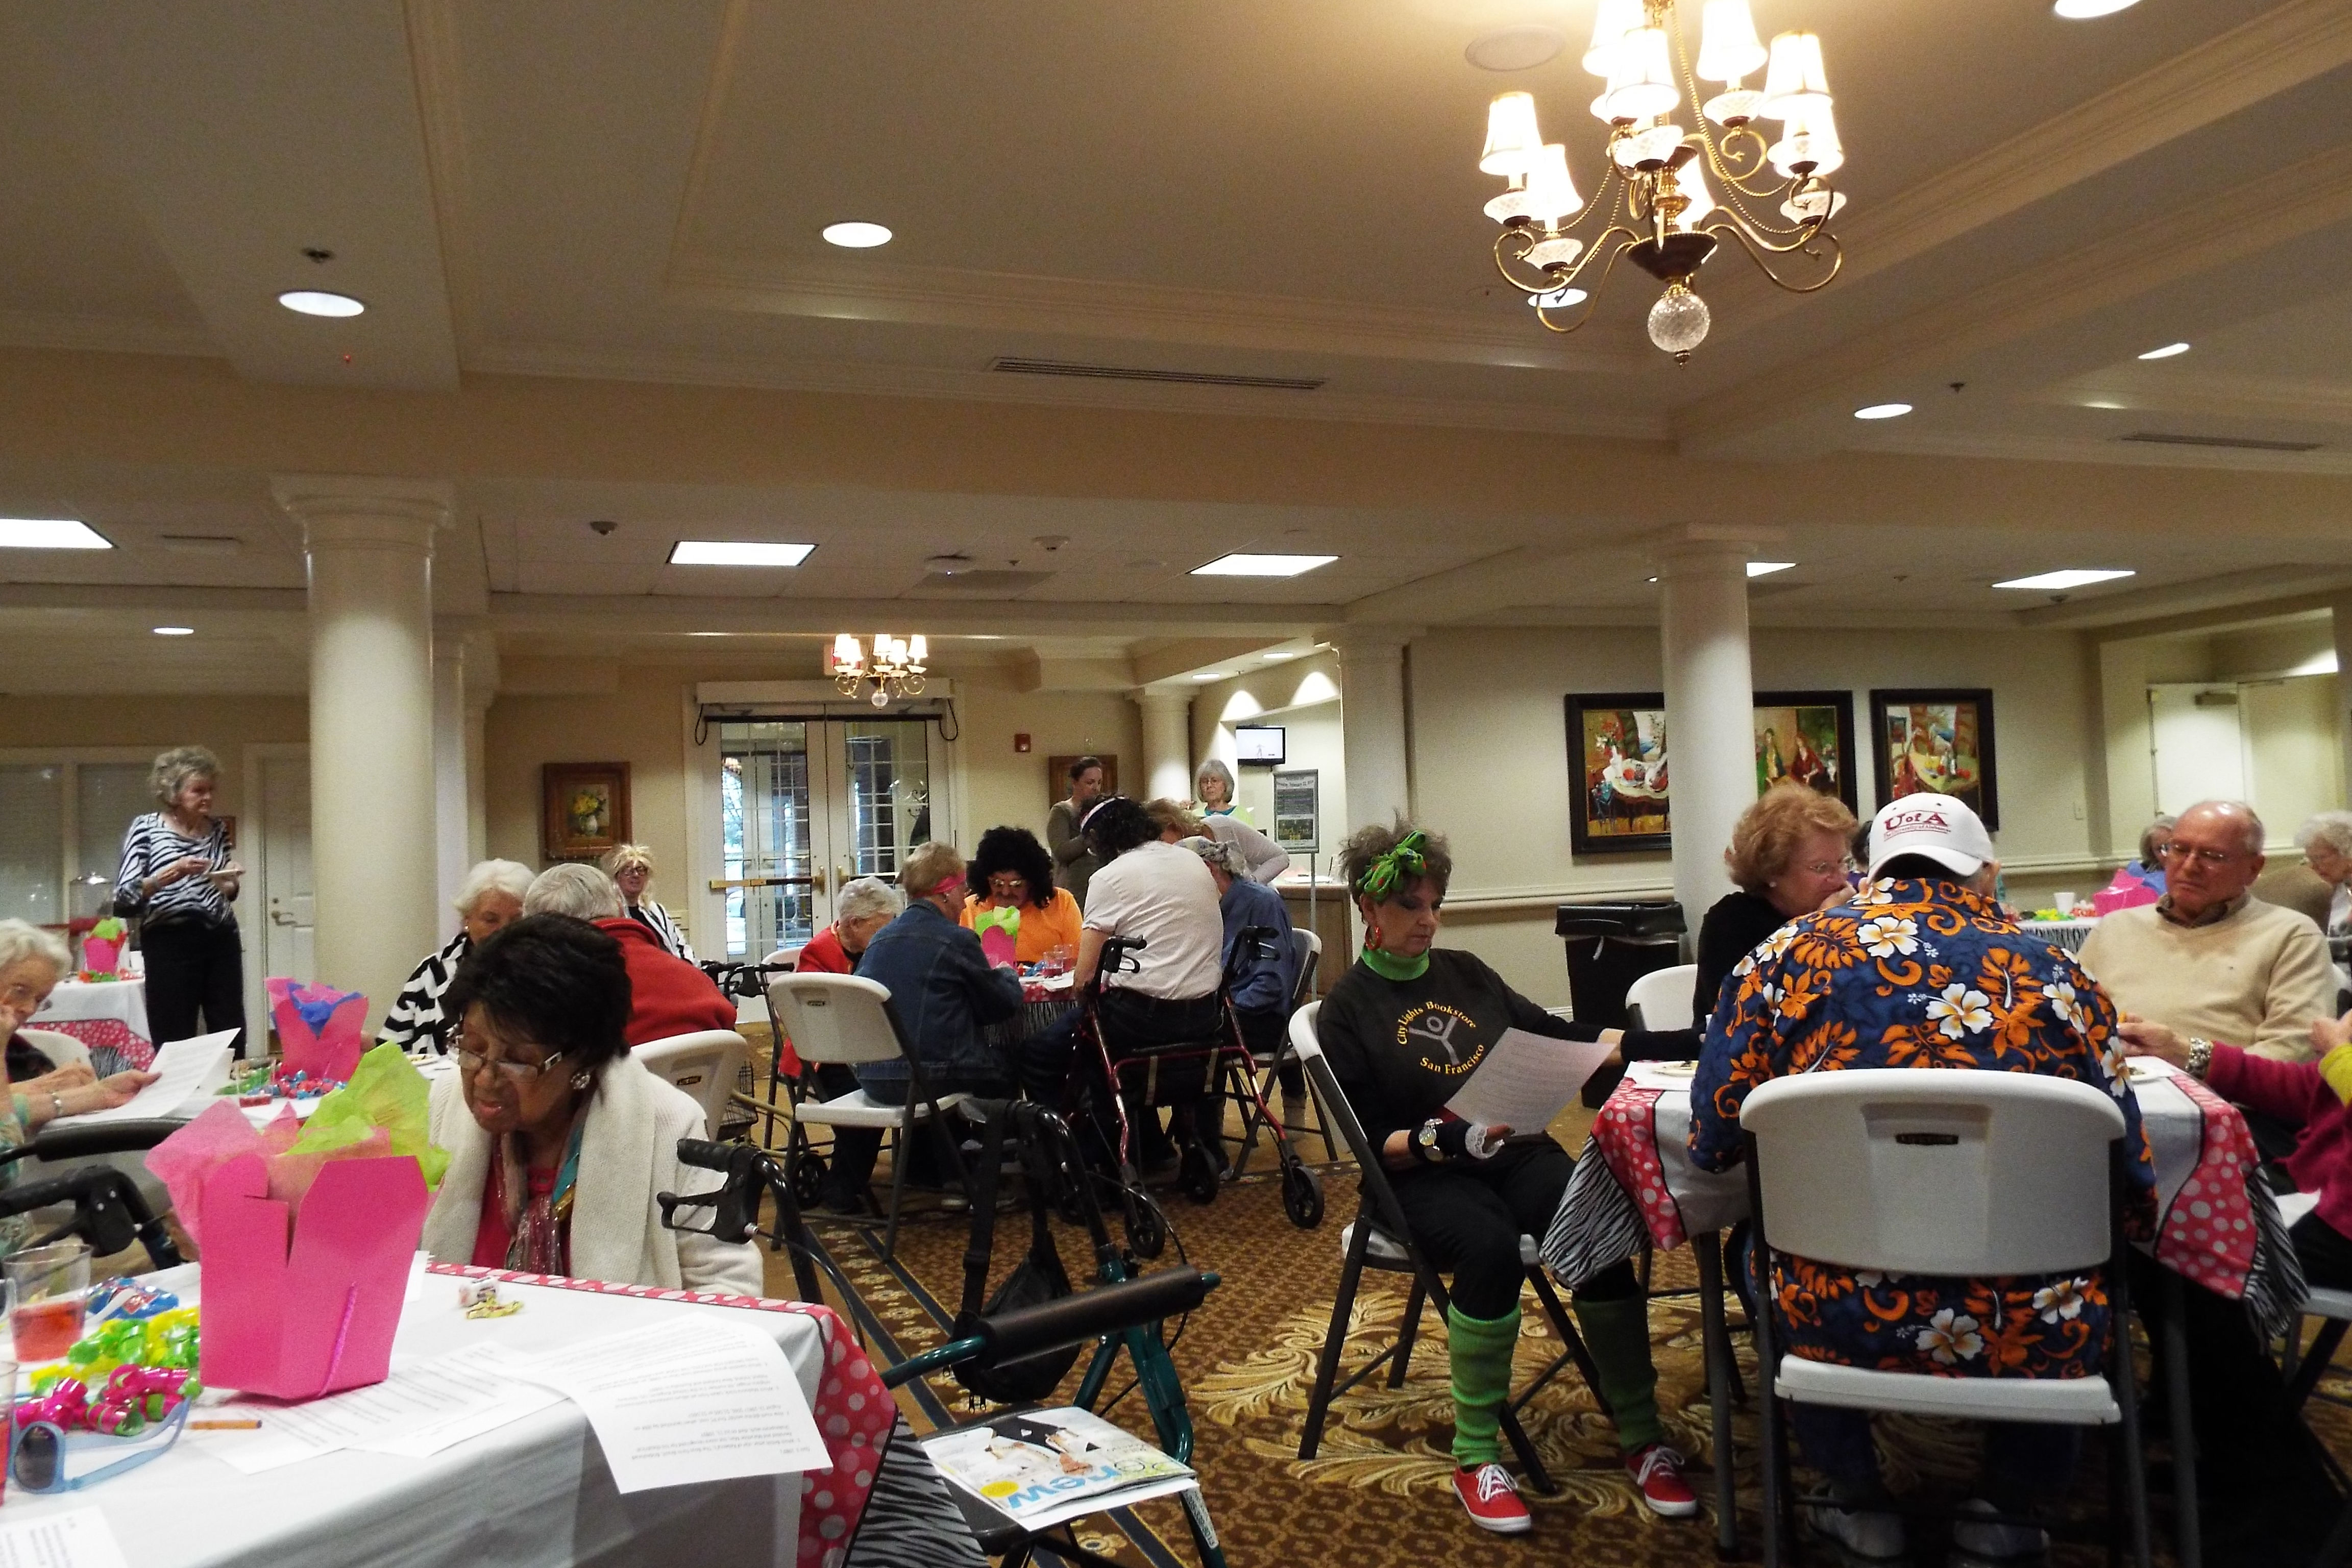 Residents at tables doing activities